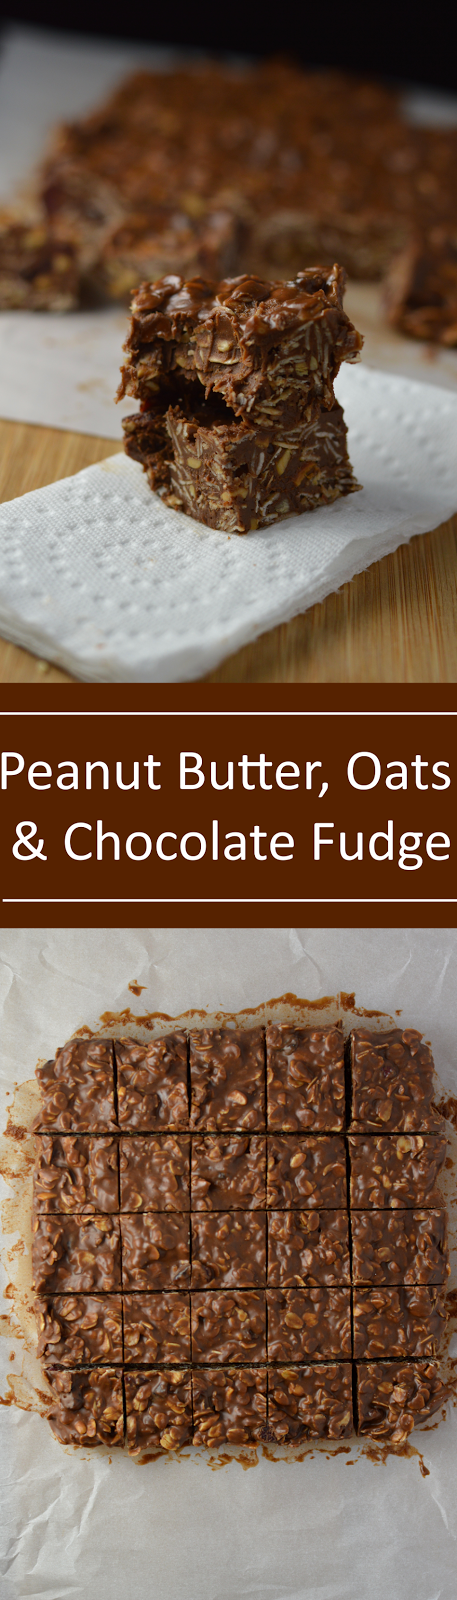 Peanut Butter, Chocolate and Oats Fudge Recipe